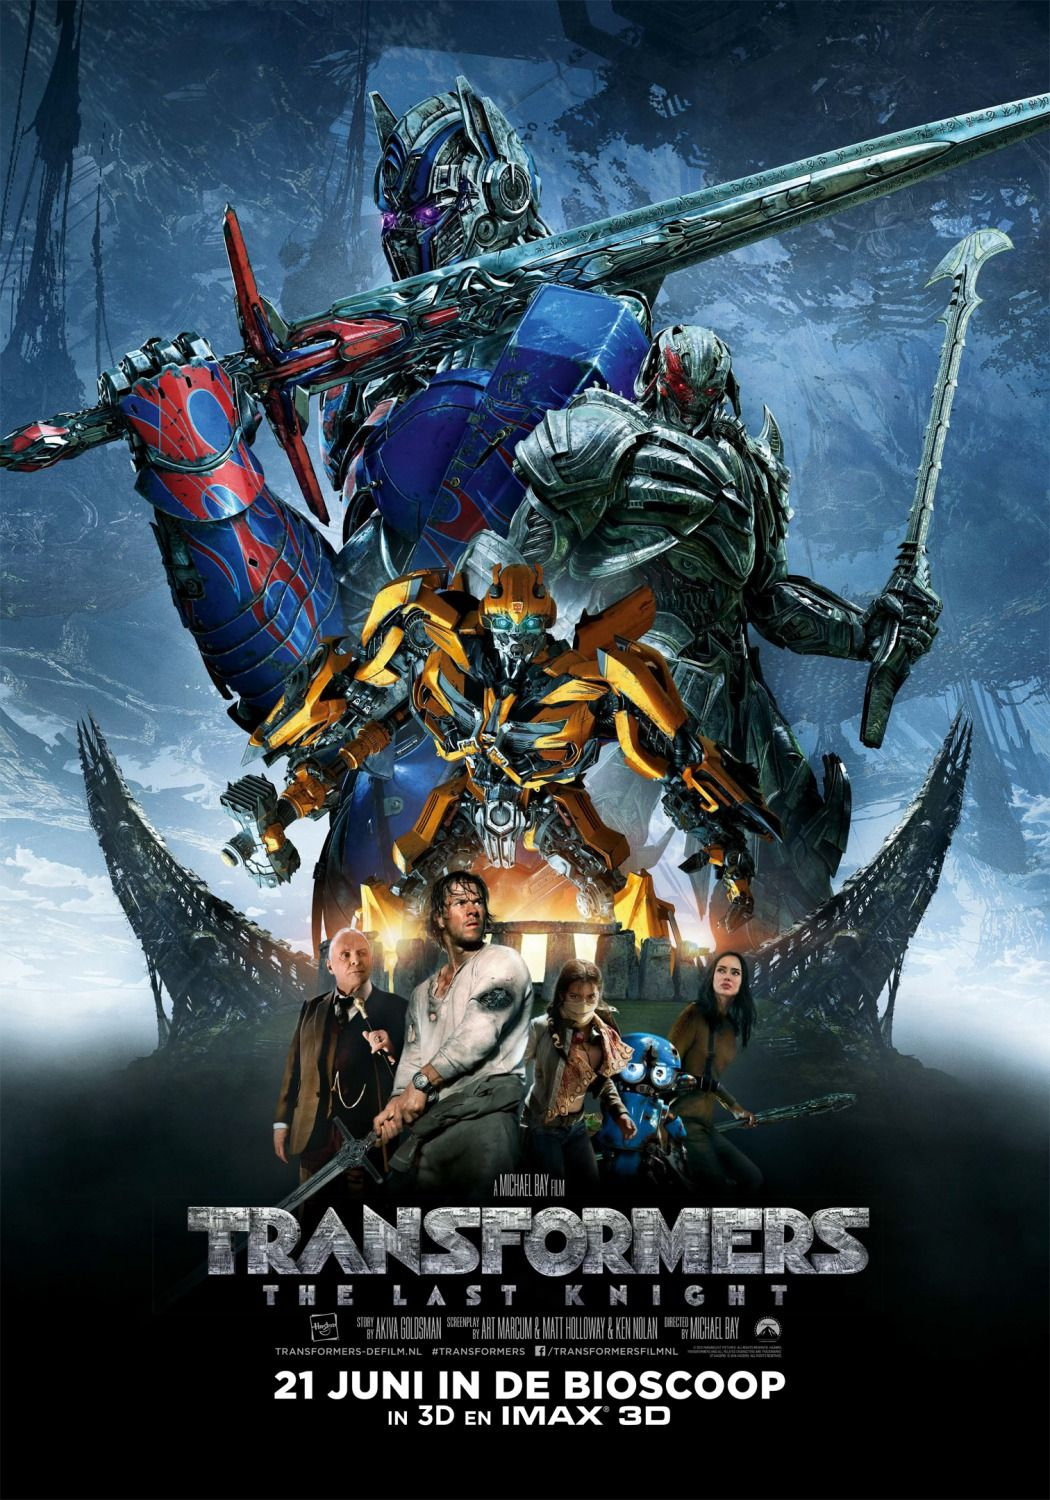 Transformers: The Last Knight Movie Poster 8 | Posters